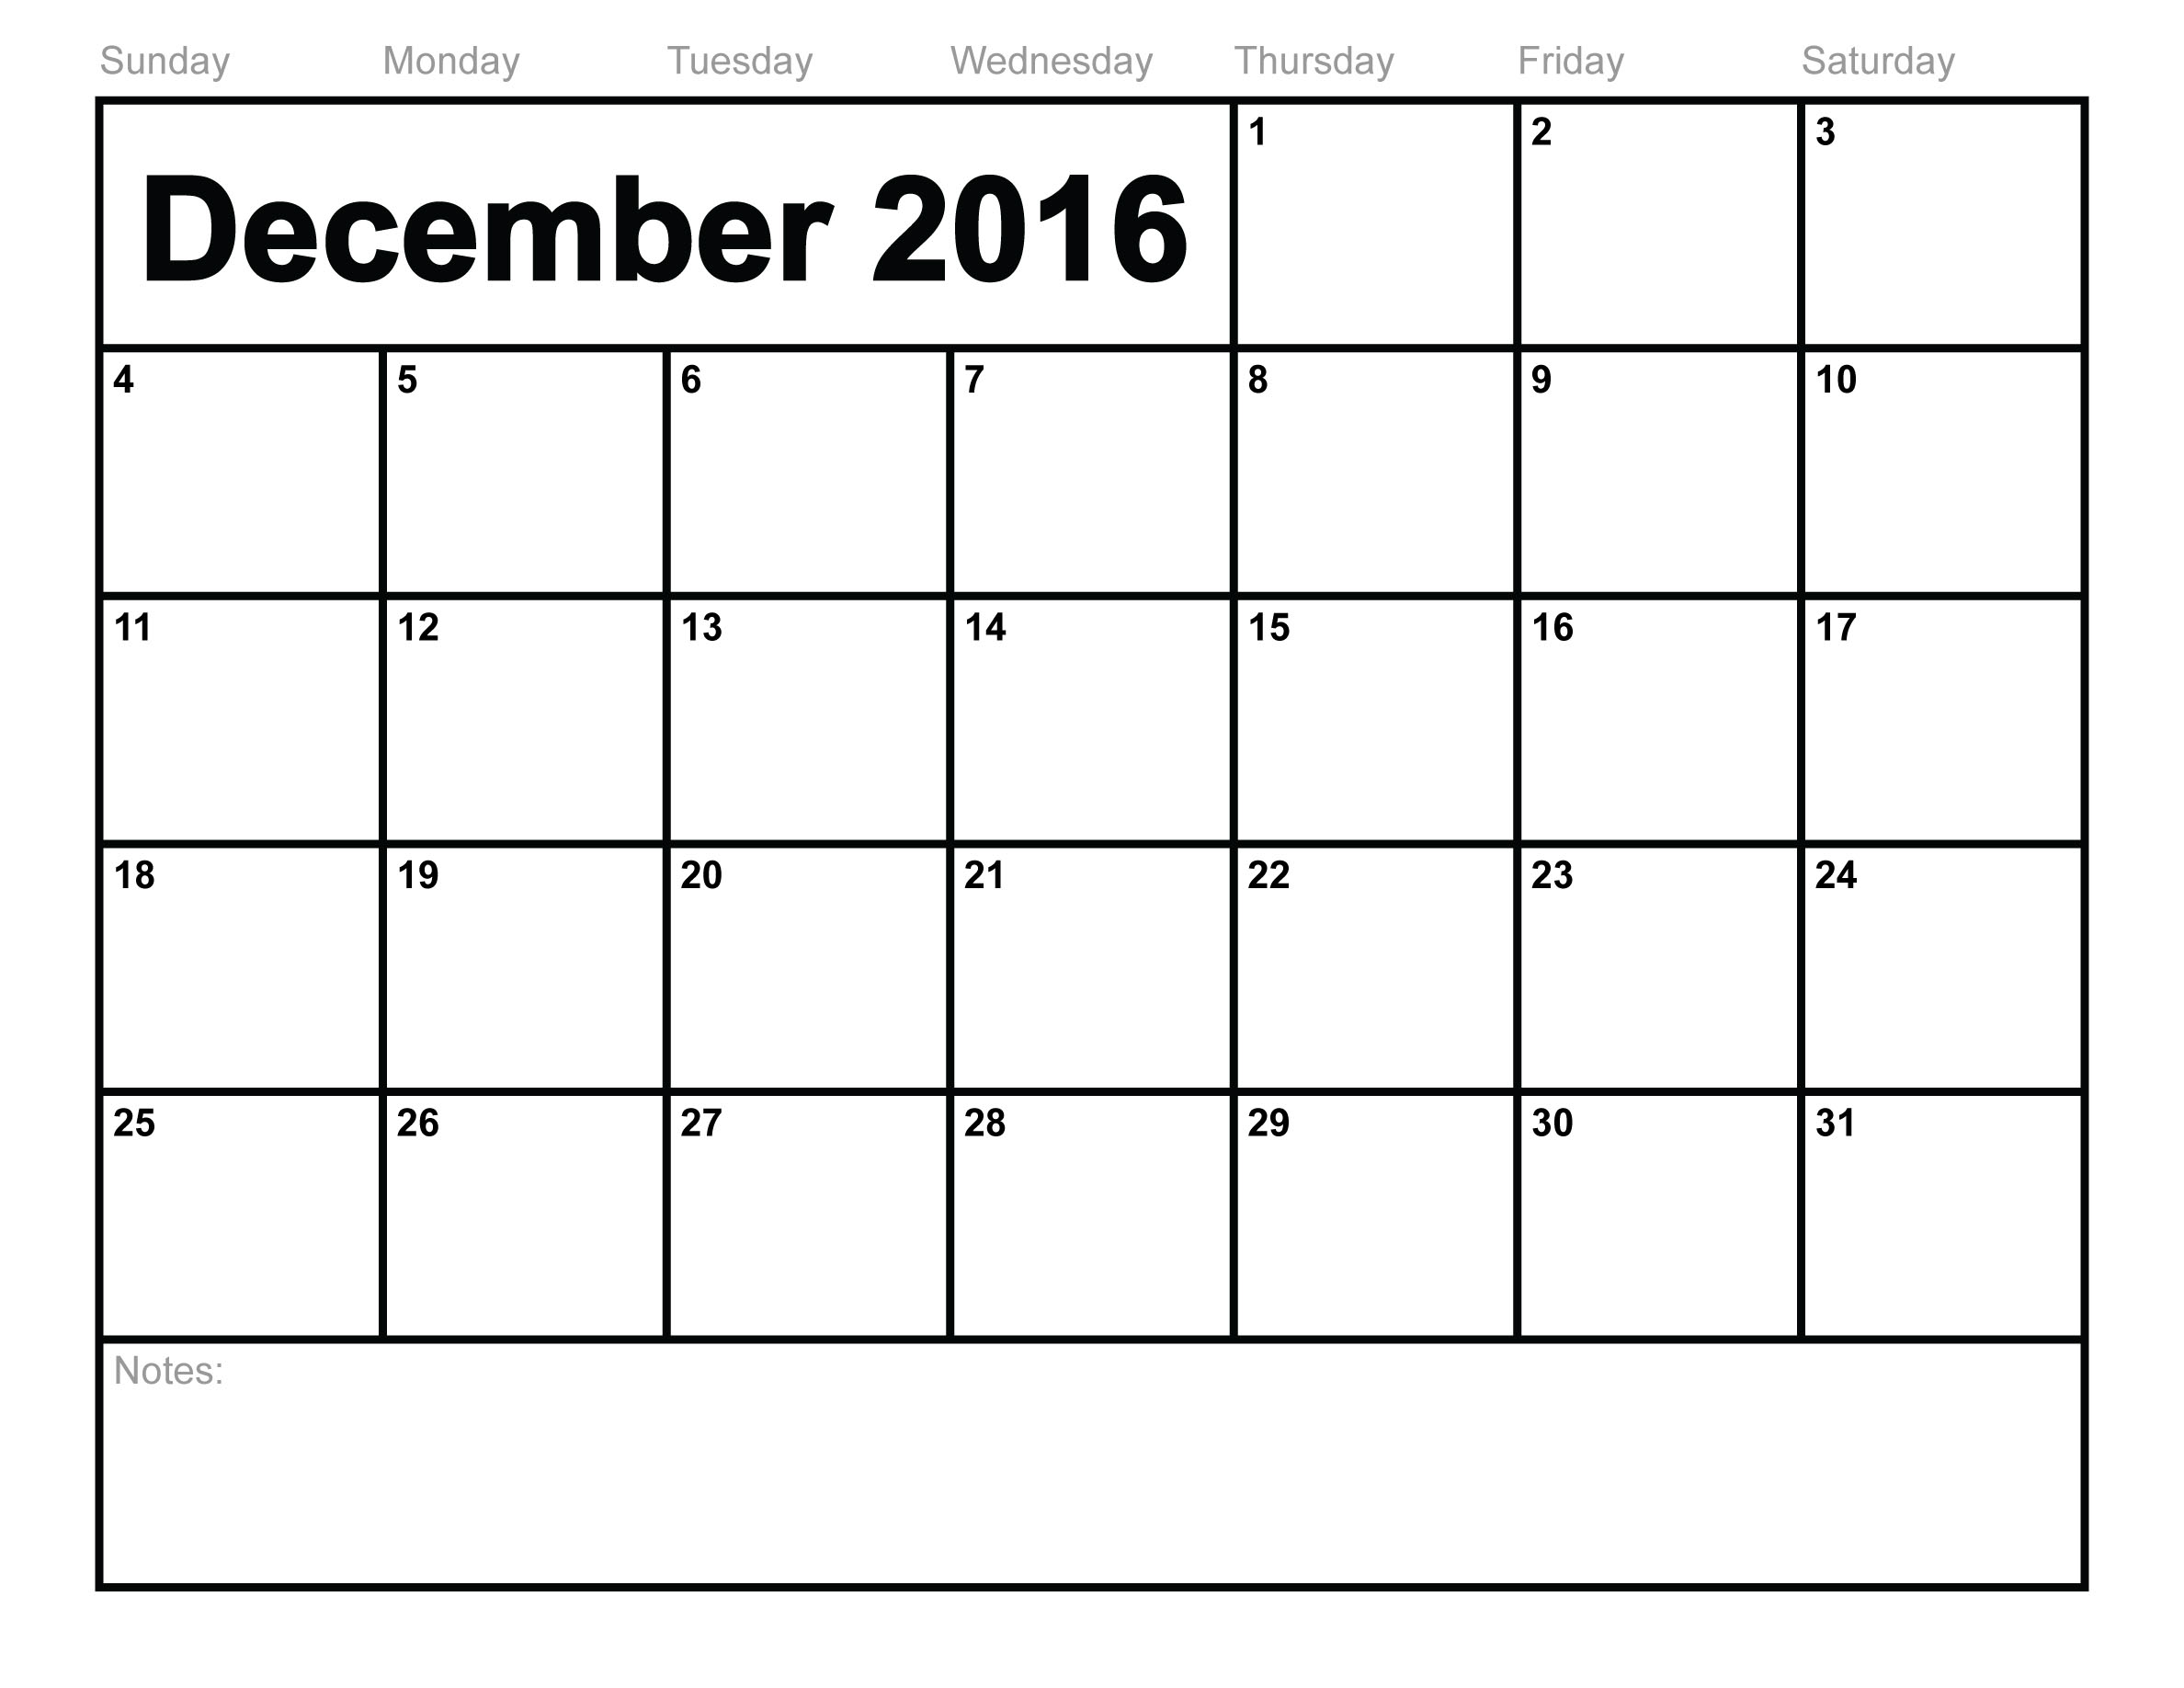 December 2016 Calendar Printable With Holidays